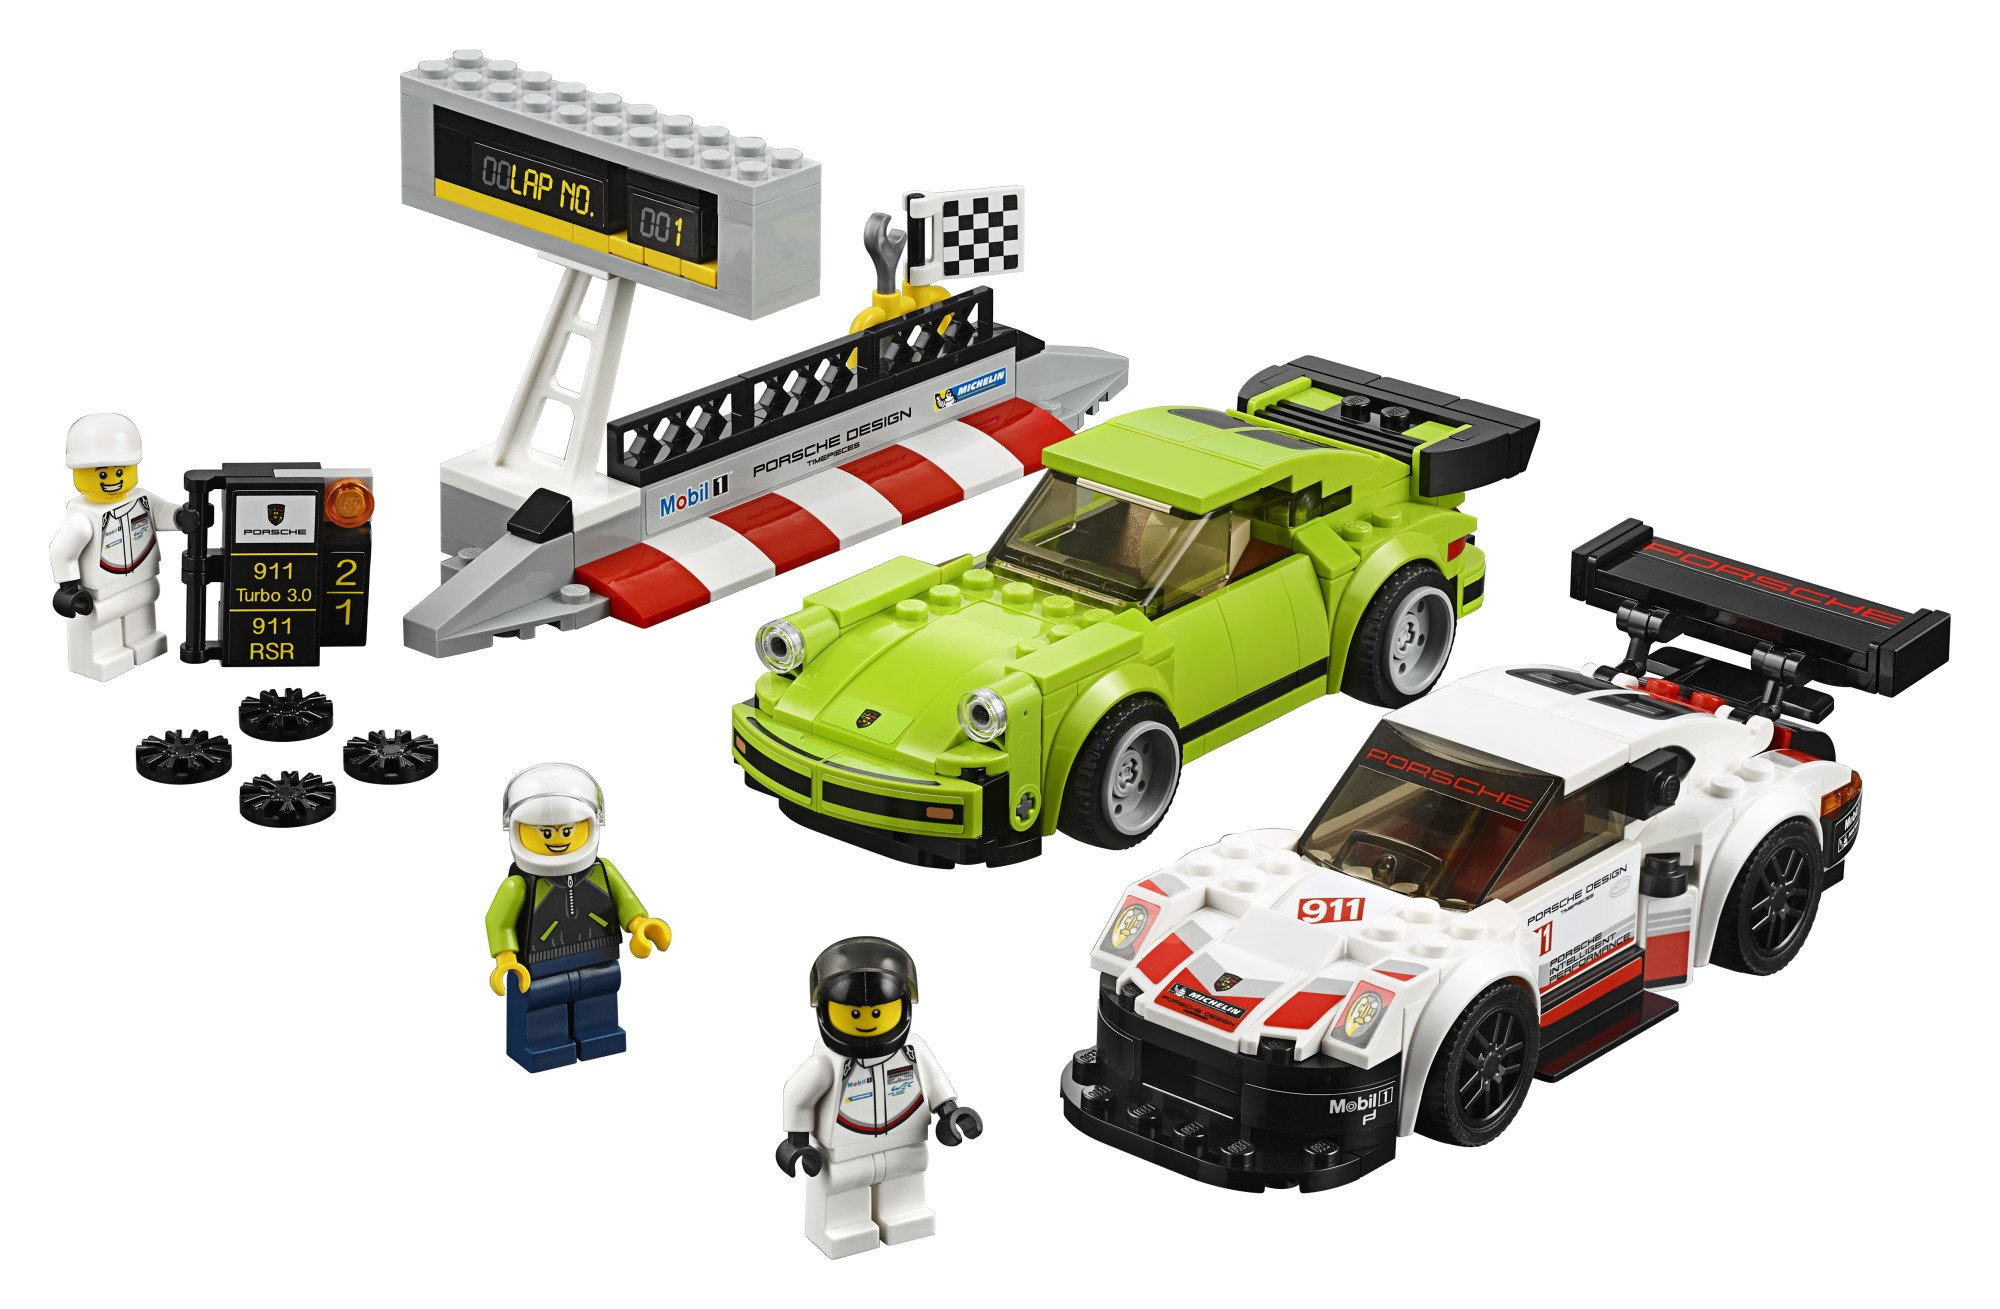 LEGO Speed Champions Porsche 911 RSR and 911 Turbo 3.0 75888 Building Kit (391 Piece) by LEGO (Image #2)